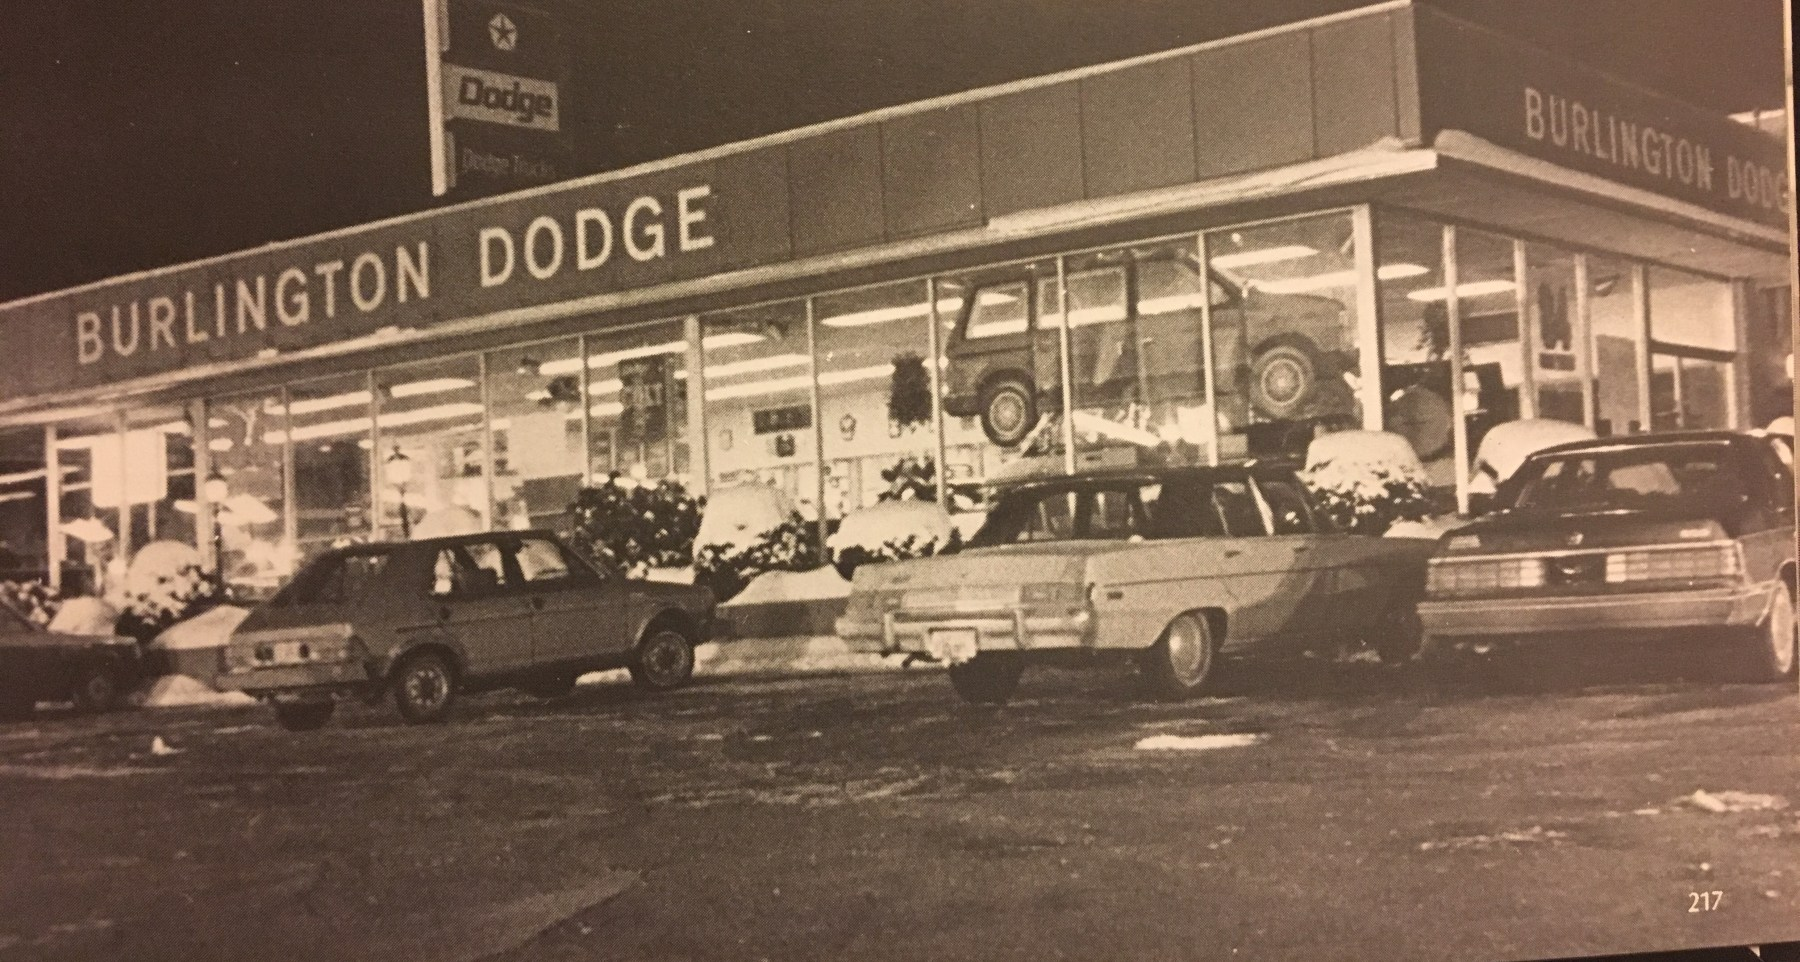 Late 1970s Burlington Dodge, Burlington, MA